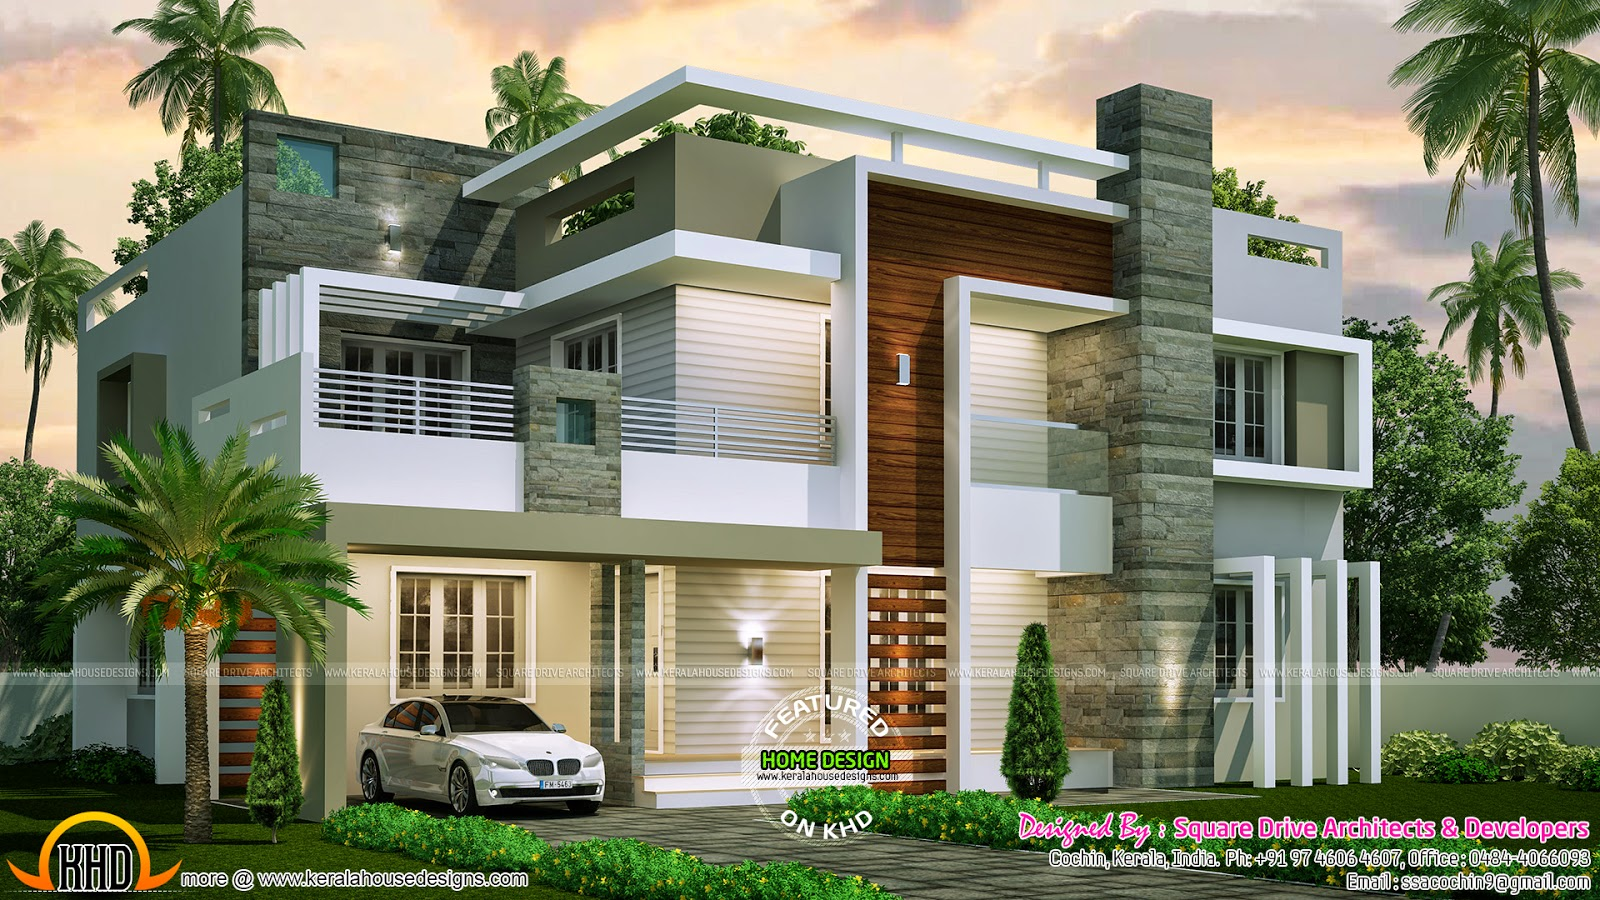 4 bedroom contemporary home design kerala home design for Mordern home